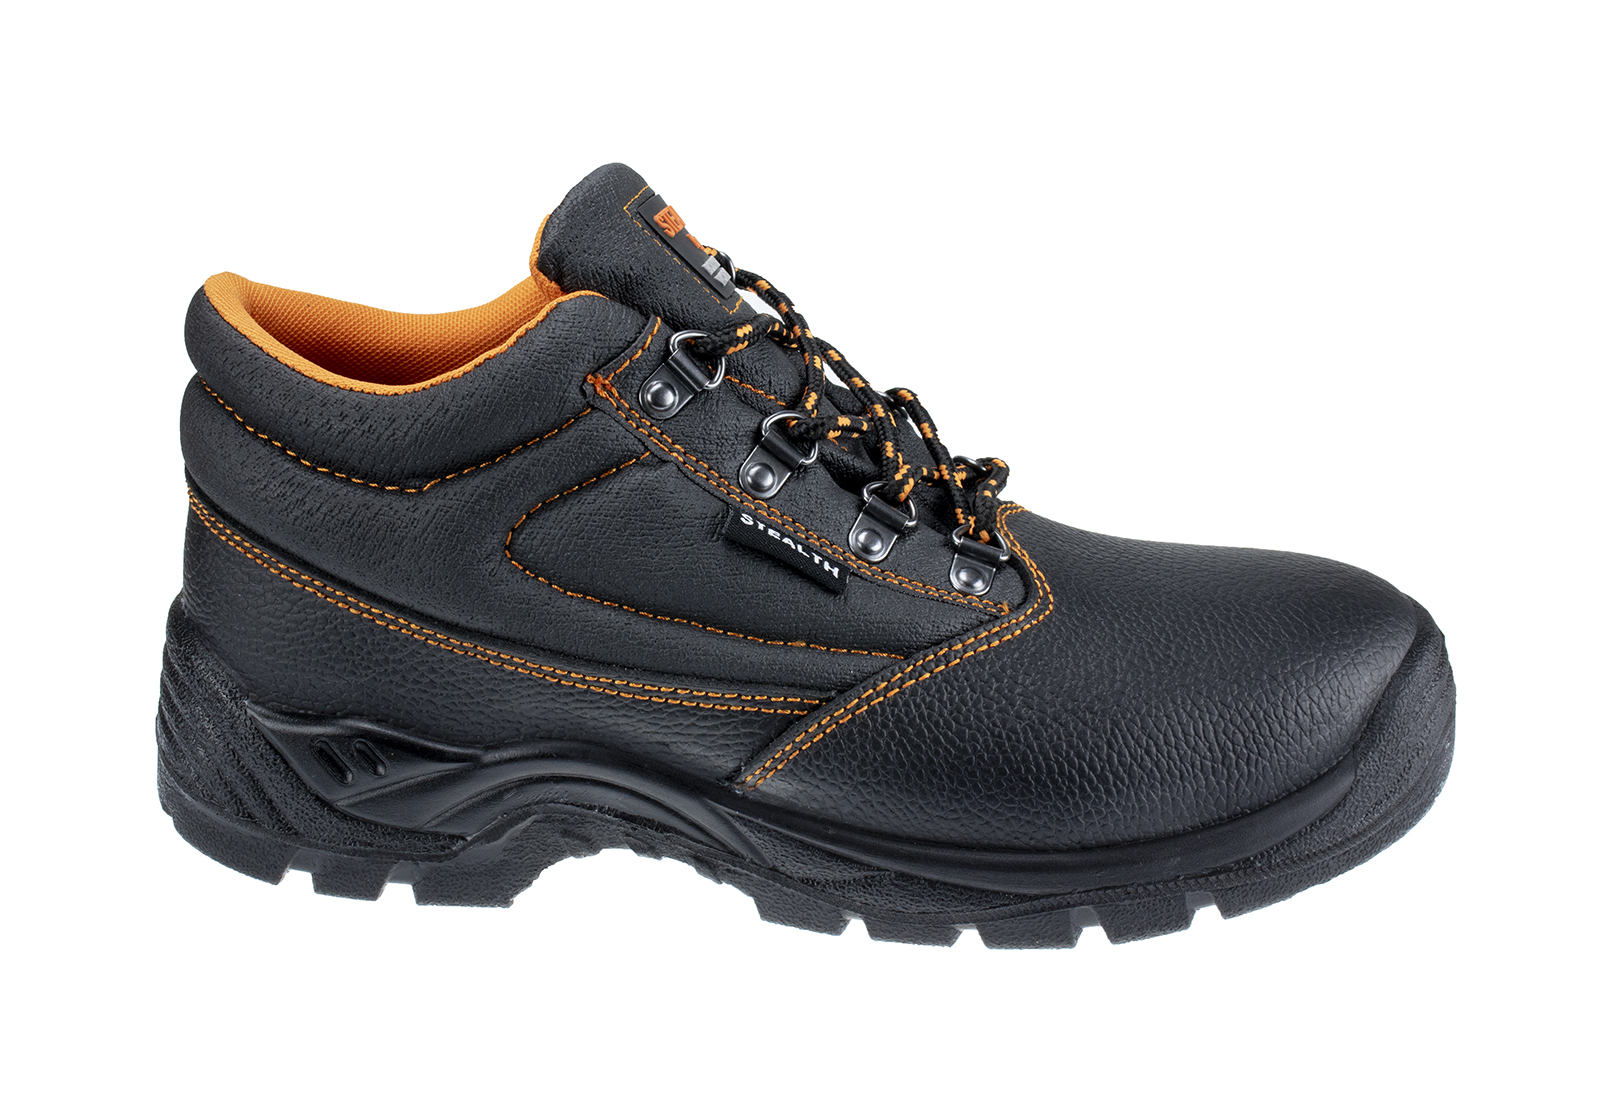 Stealth Leather Safety Boot w/ Padded collar & Dual density PU Sole - main